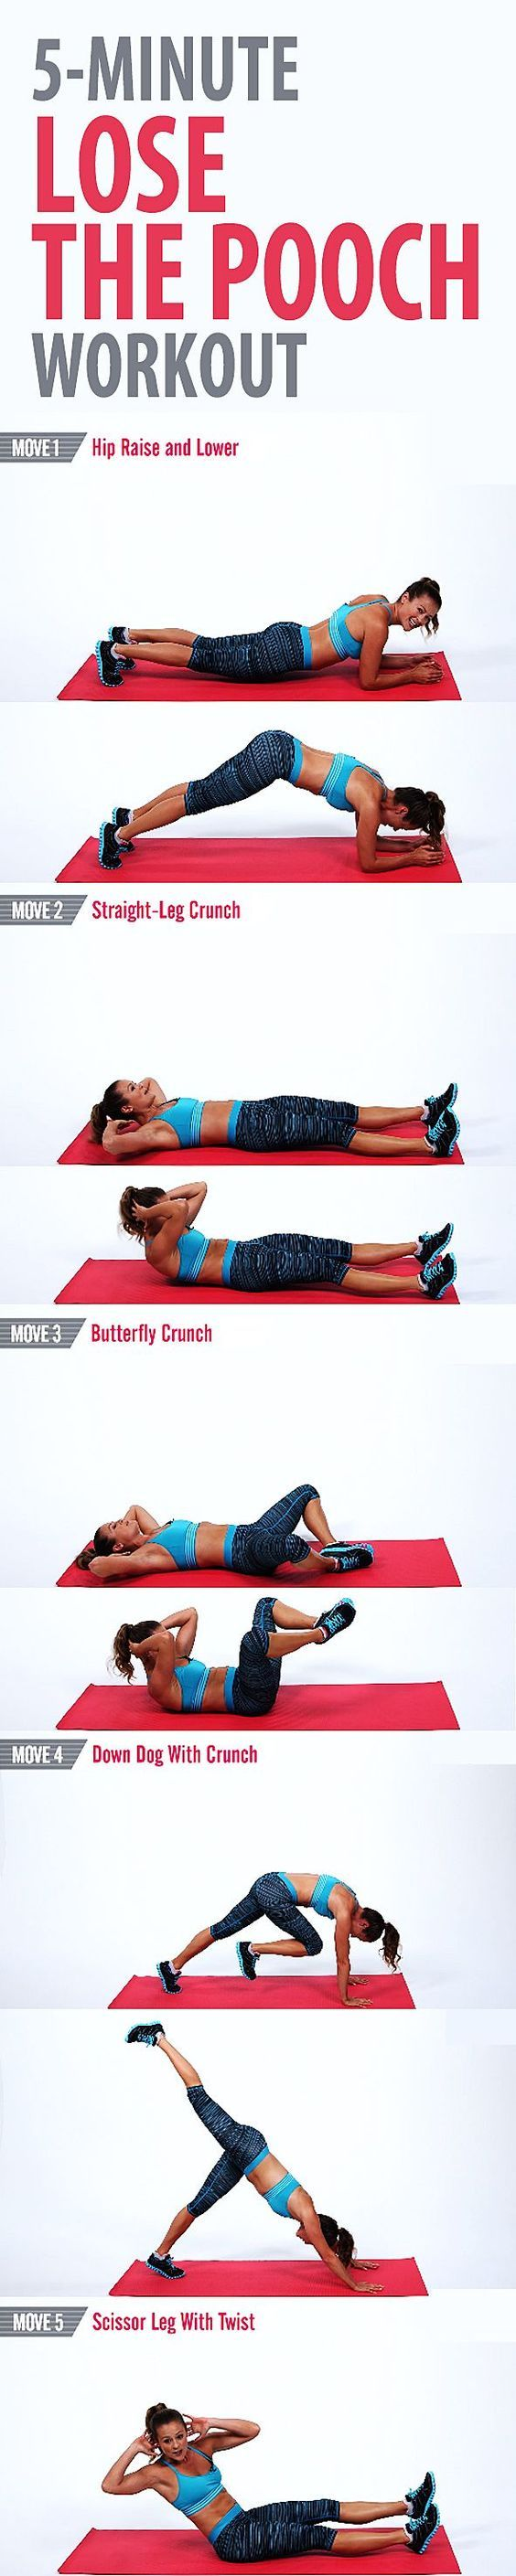 Try this quick and focused workout to tone the lower part of your abs and work off the pooch. We concentrate on the abs for five minutes.